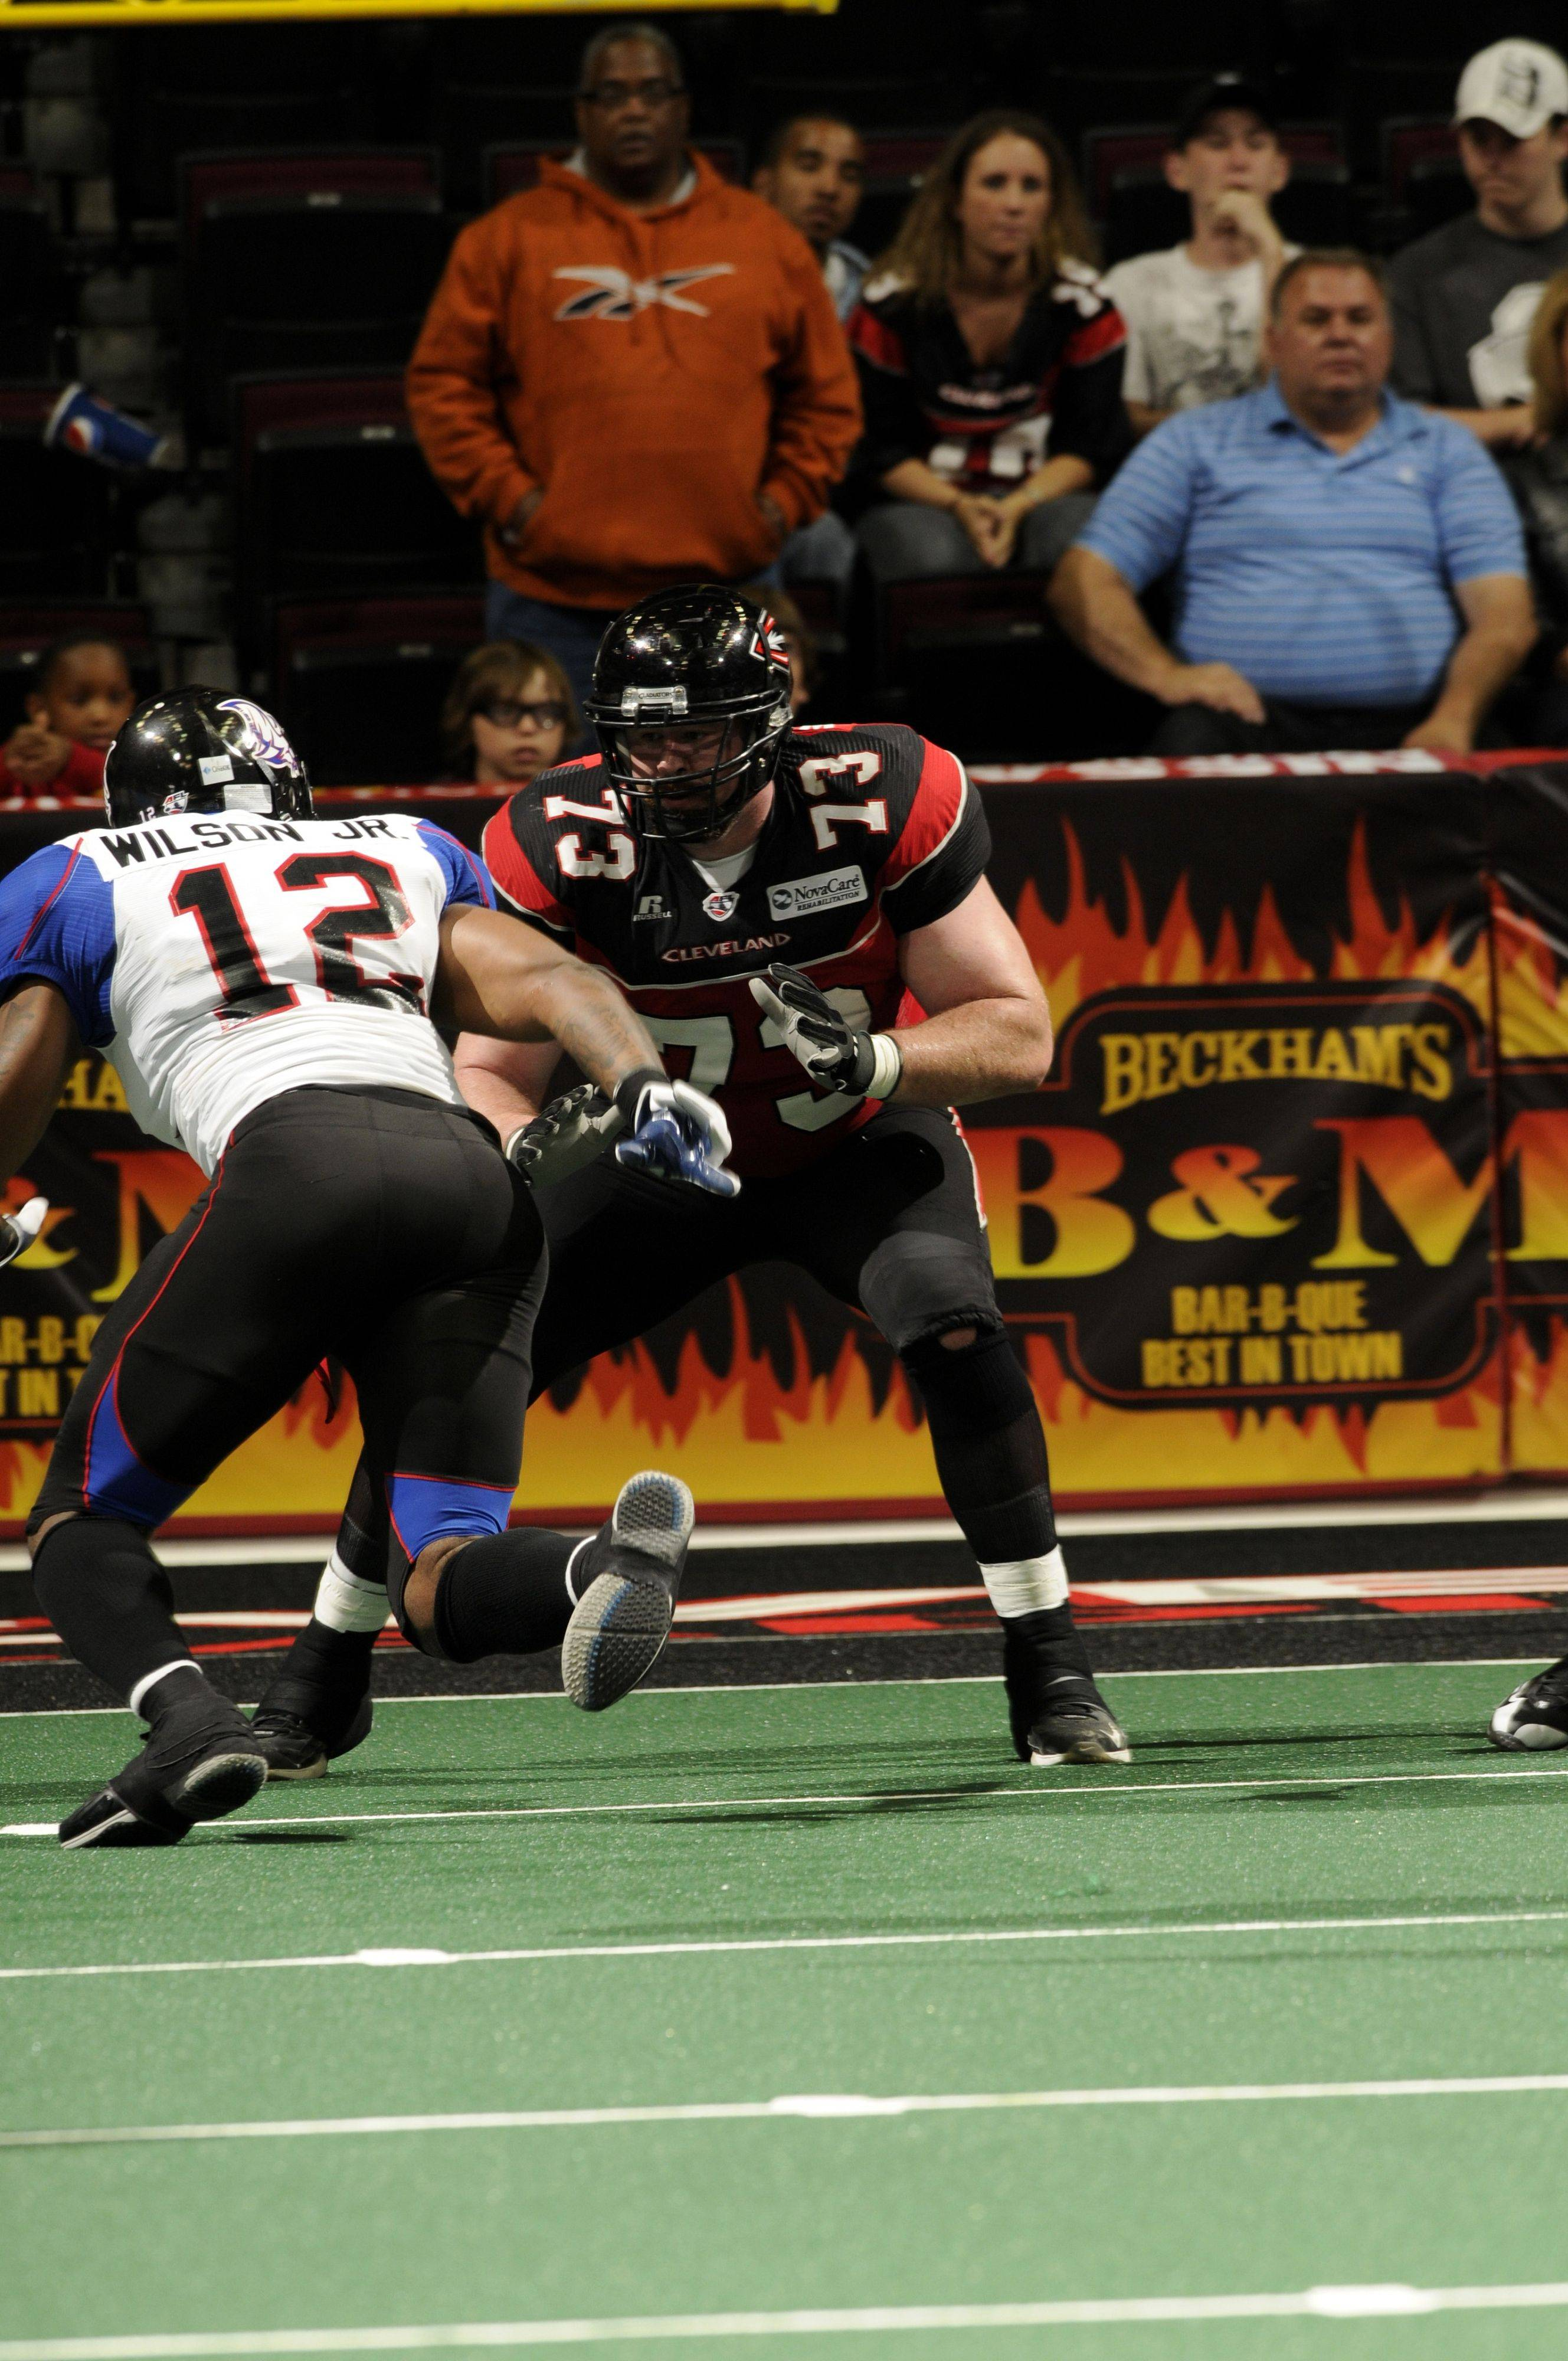 After playing with Cleveland and Grand Rapids, offensive lineman TJ Watkins has signed with the Chicago Rush.